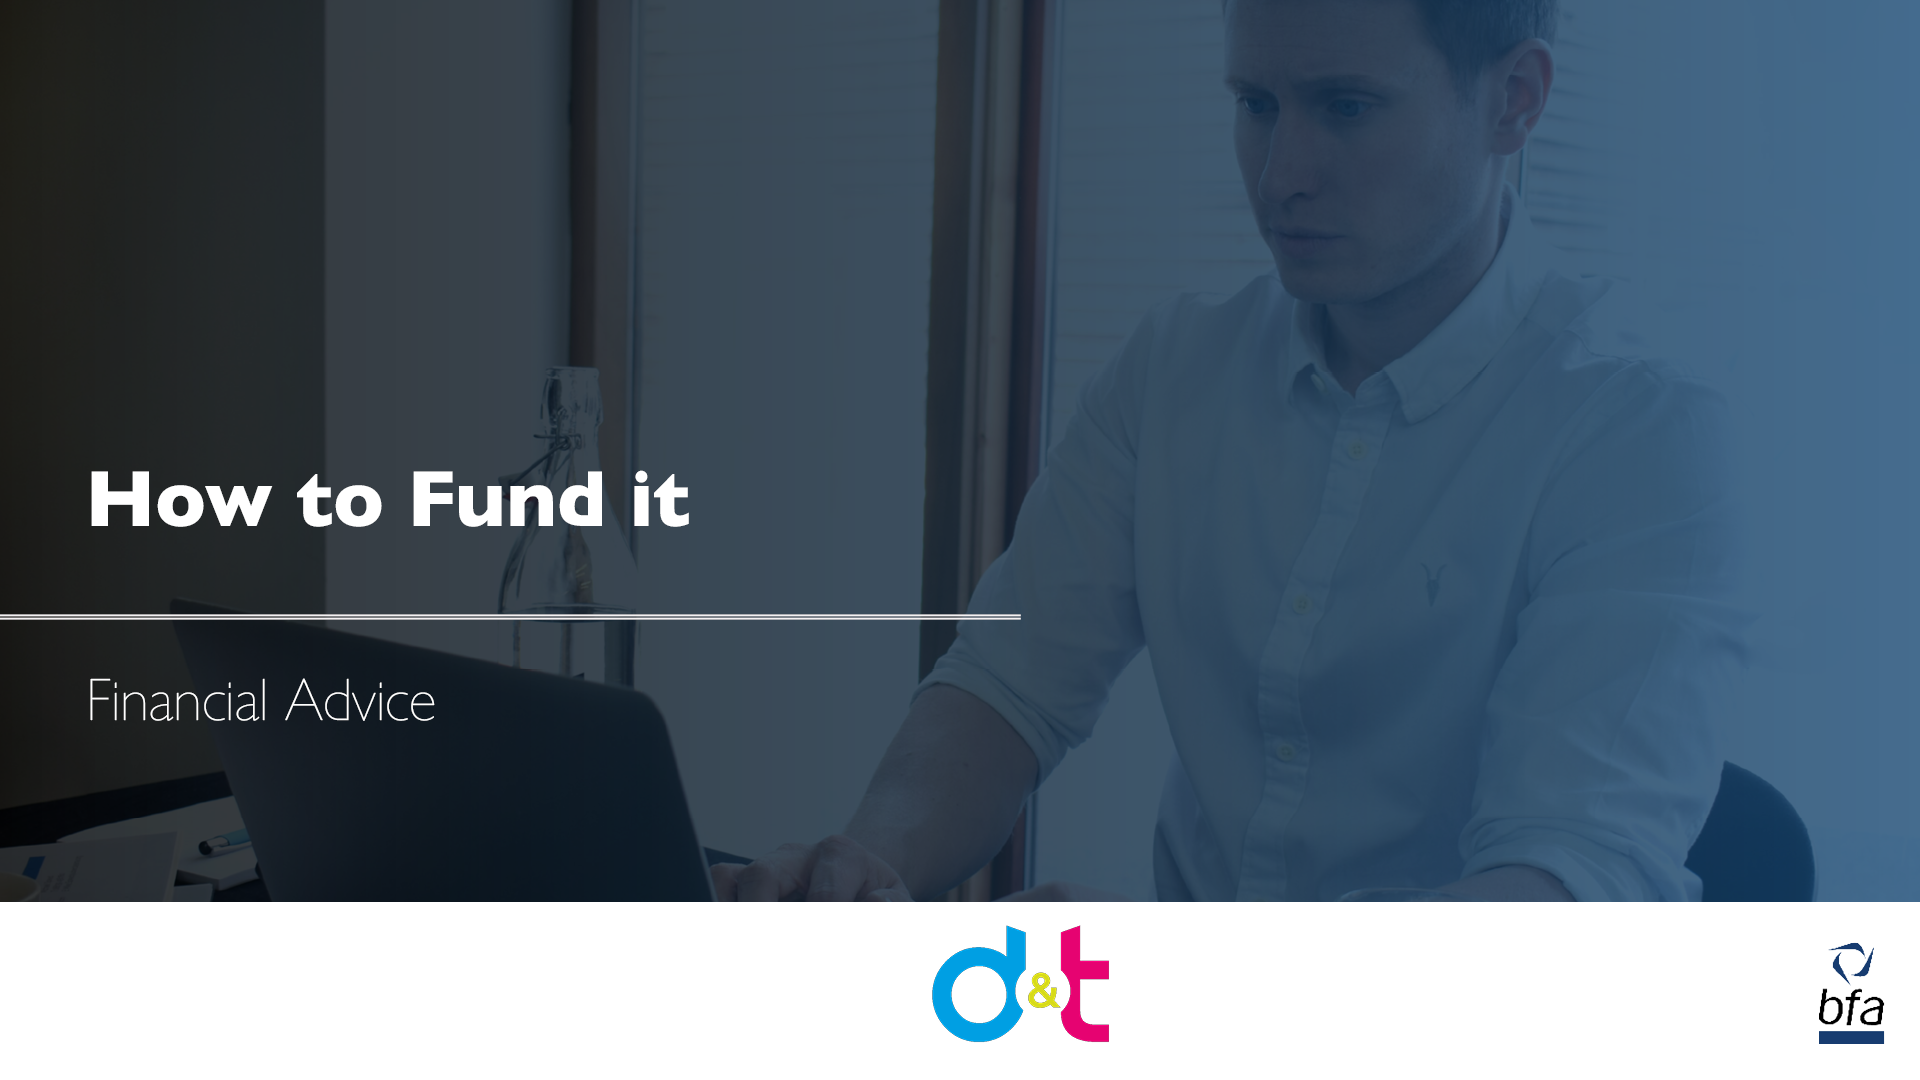 How to Fund It